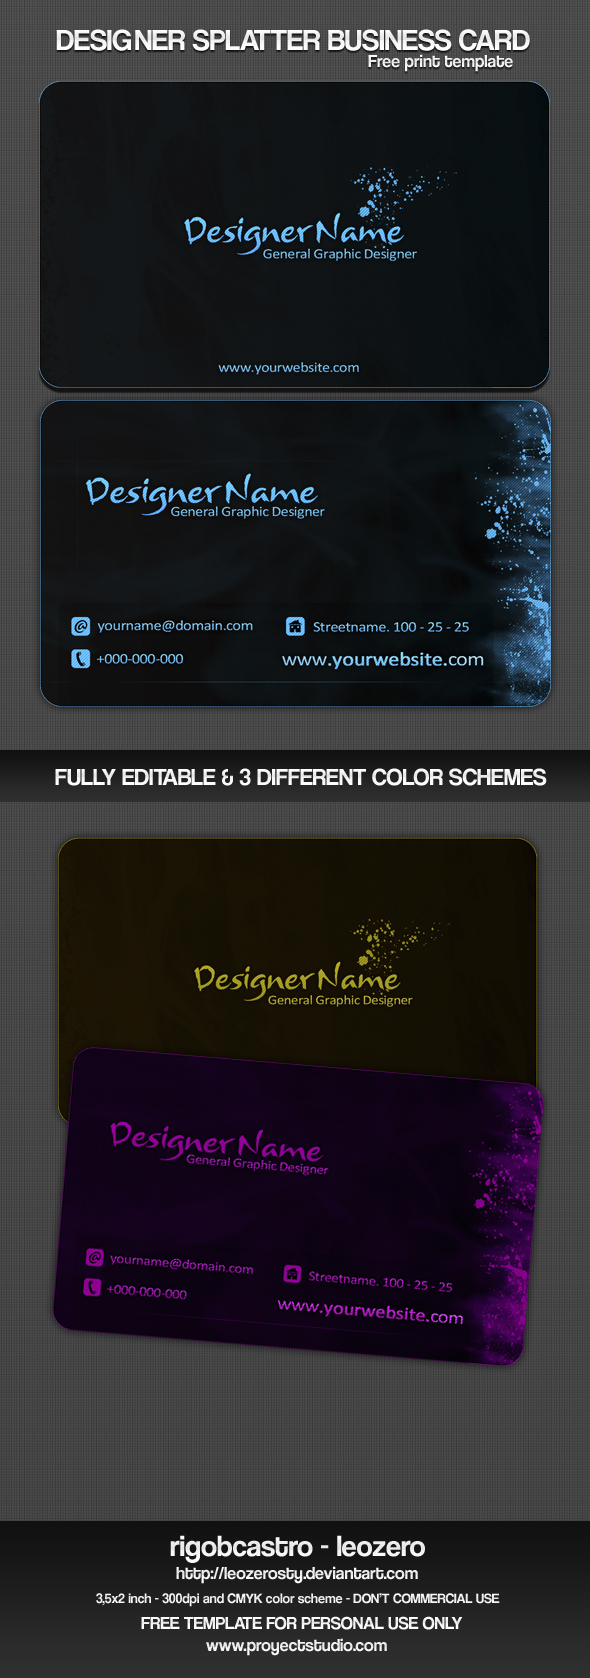 DS Business Card Template